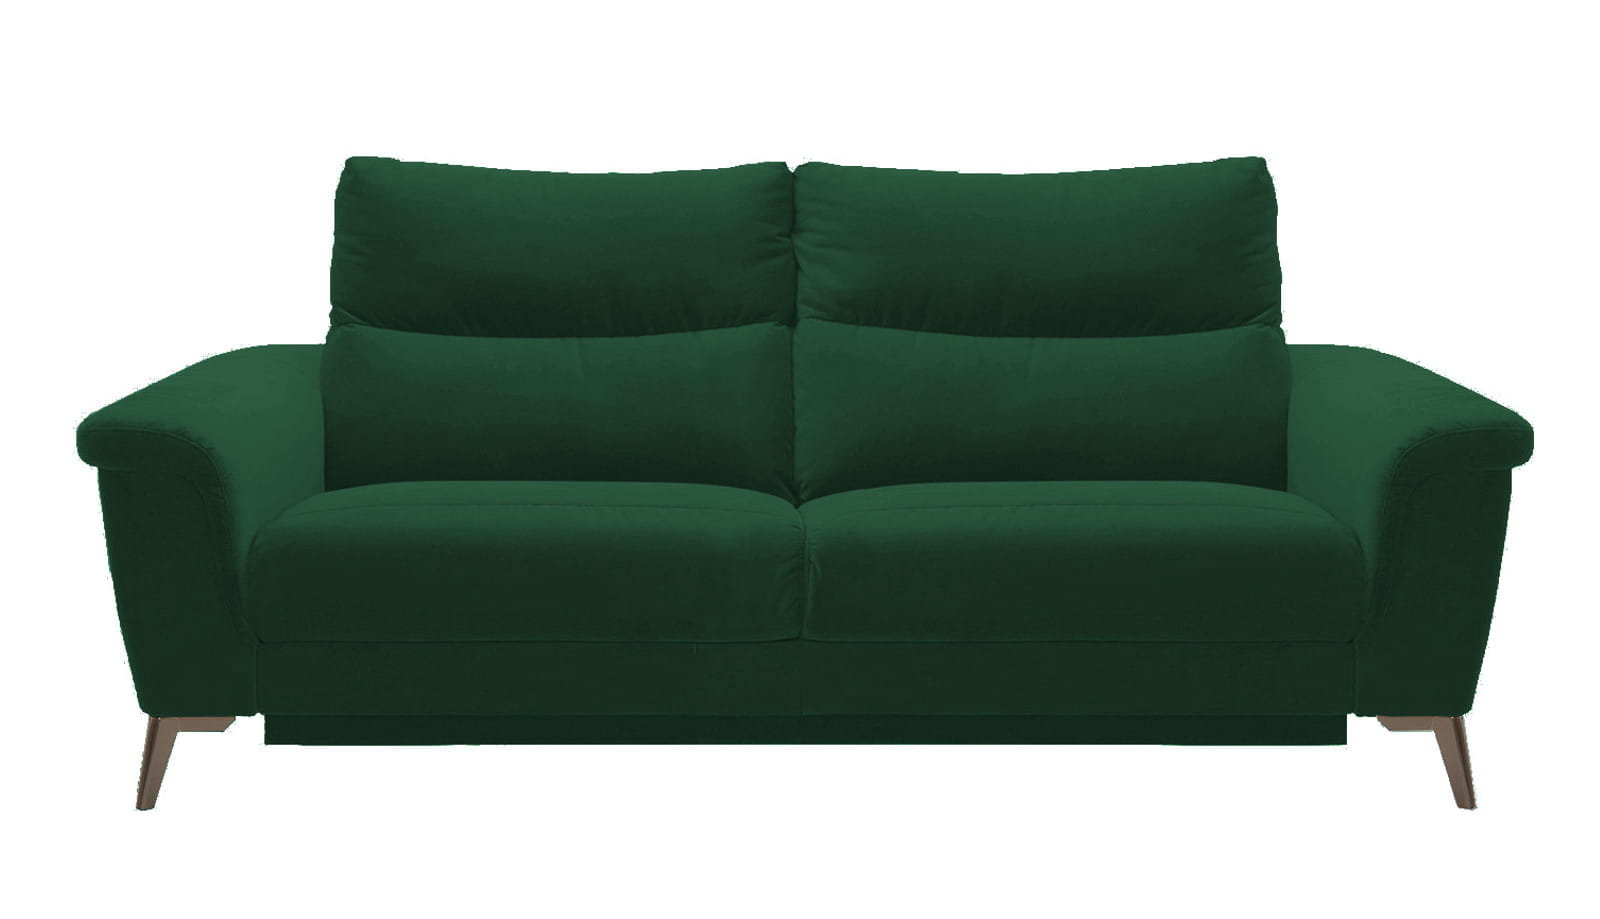 sofa_Verbena_Bellagio_82_4.jpg